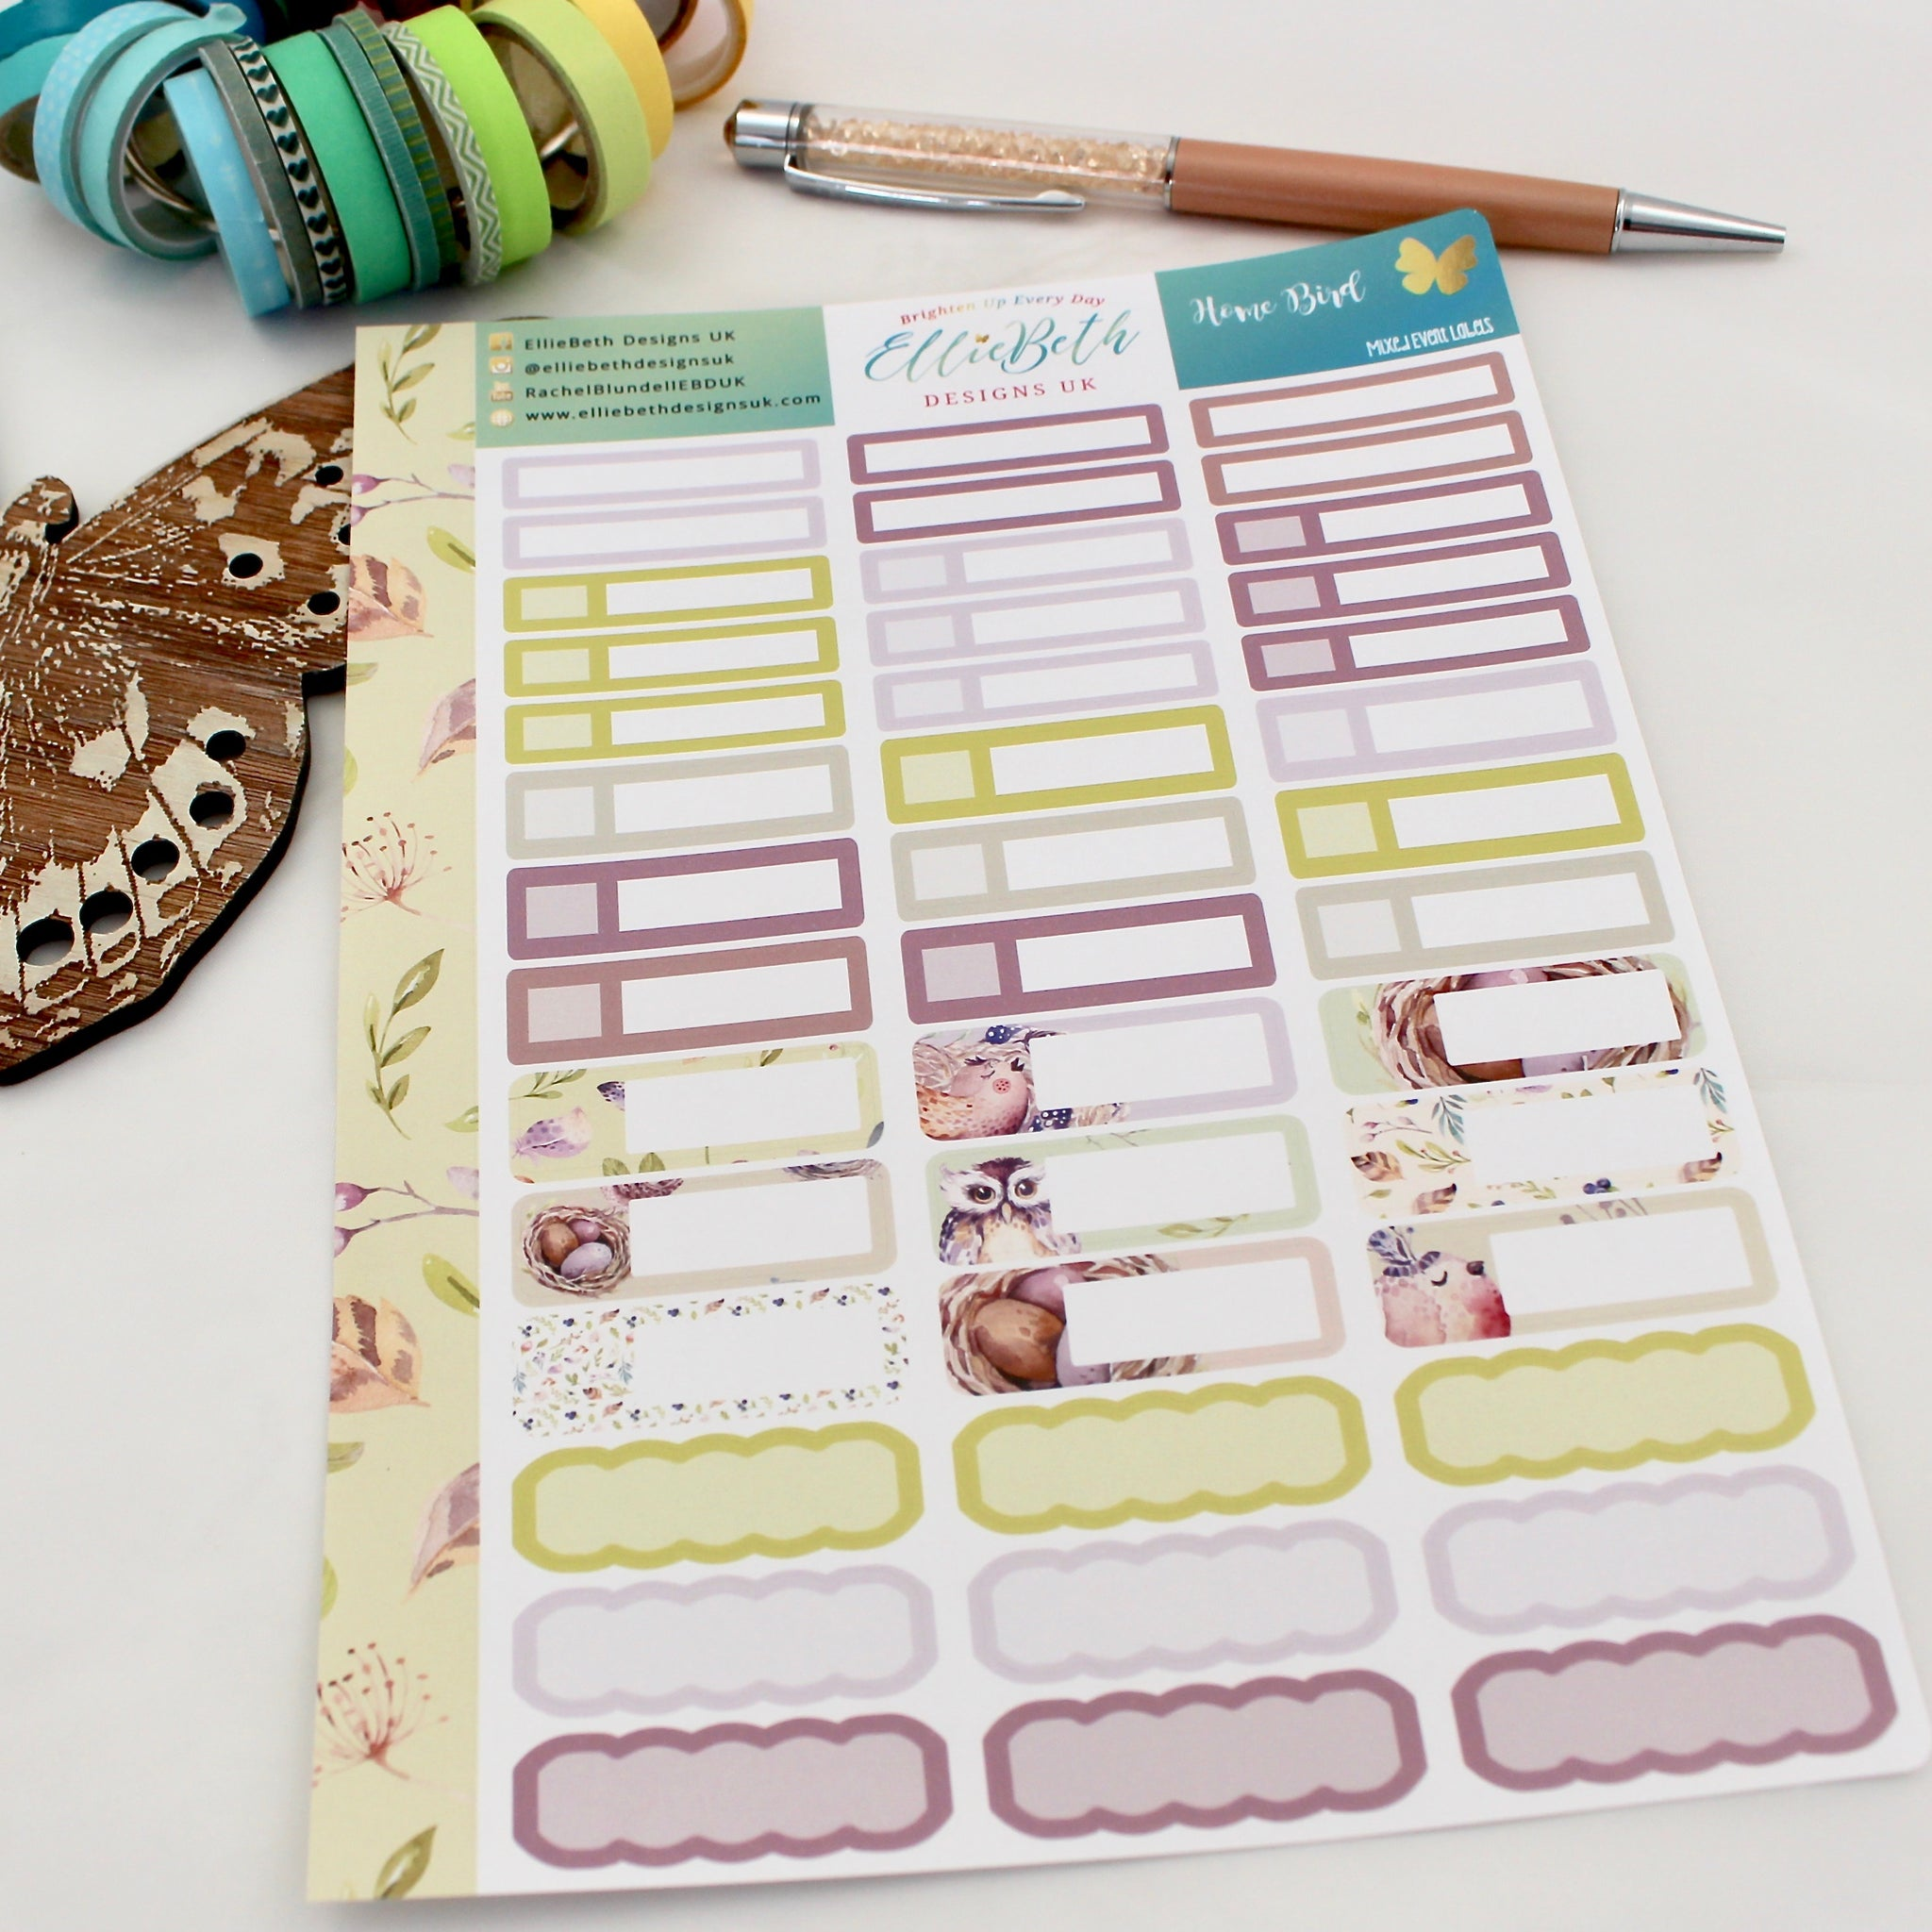 'Home Bird' - Mixed Event Labels -  A5 binder ready planner stickers - EllieBeth Designs UK